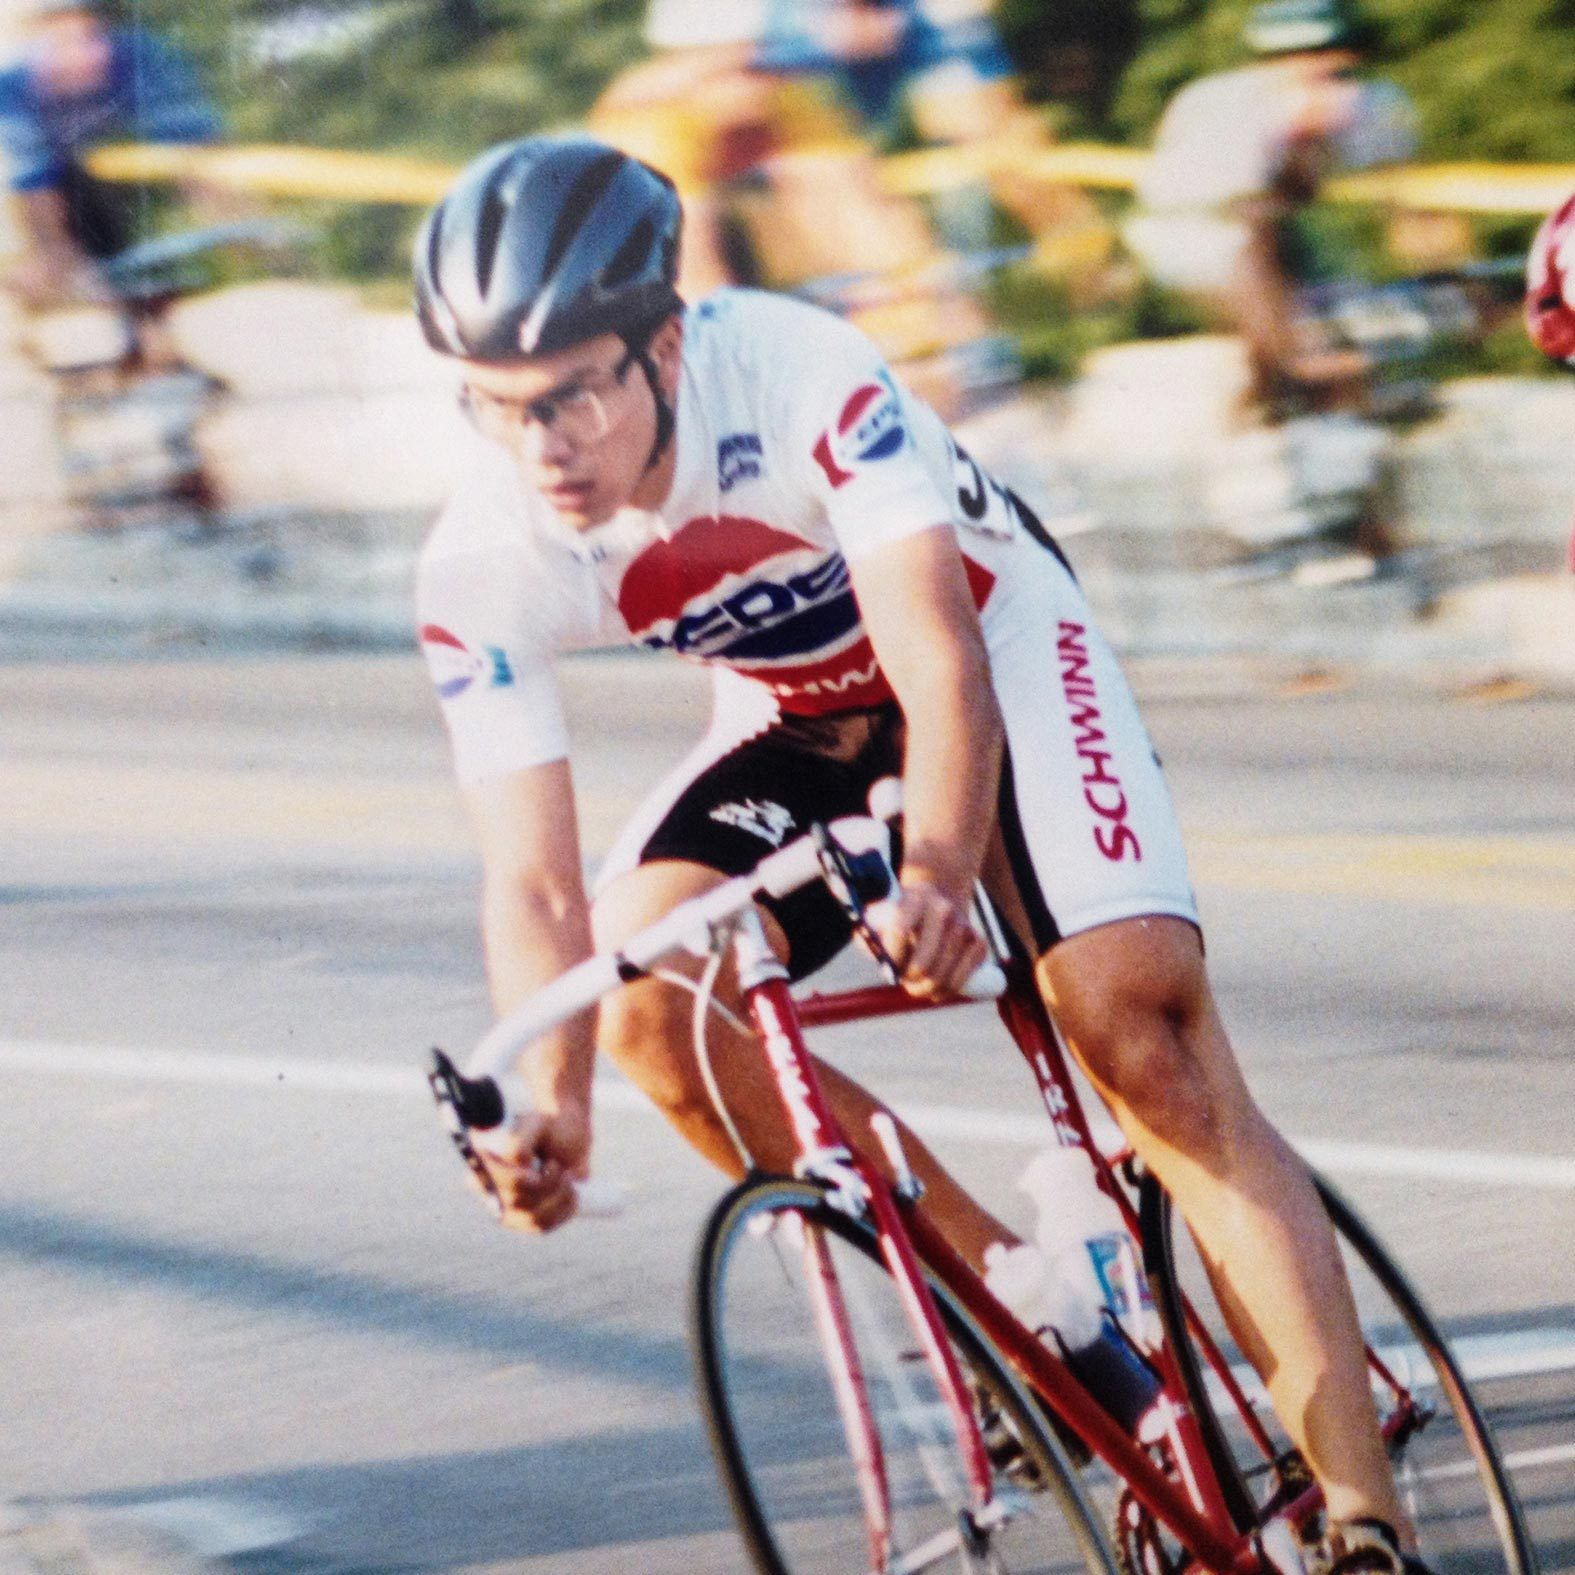 Tom as a teenager competing as a cyclist